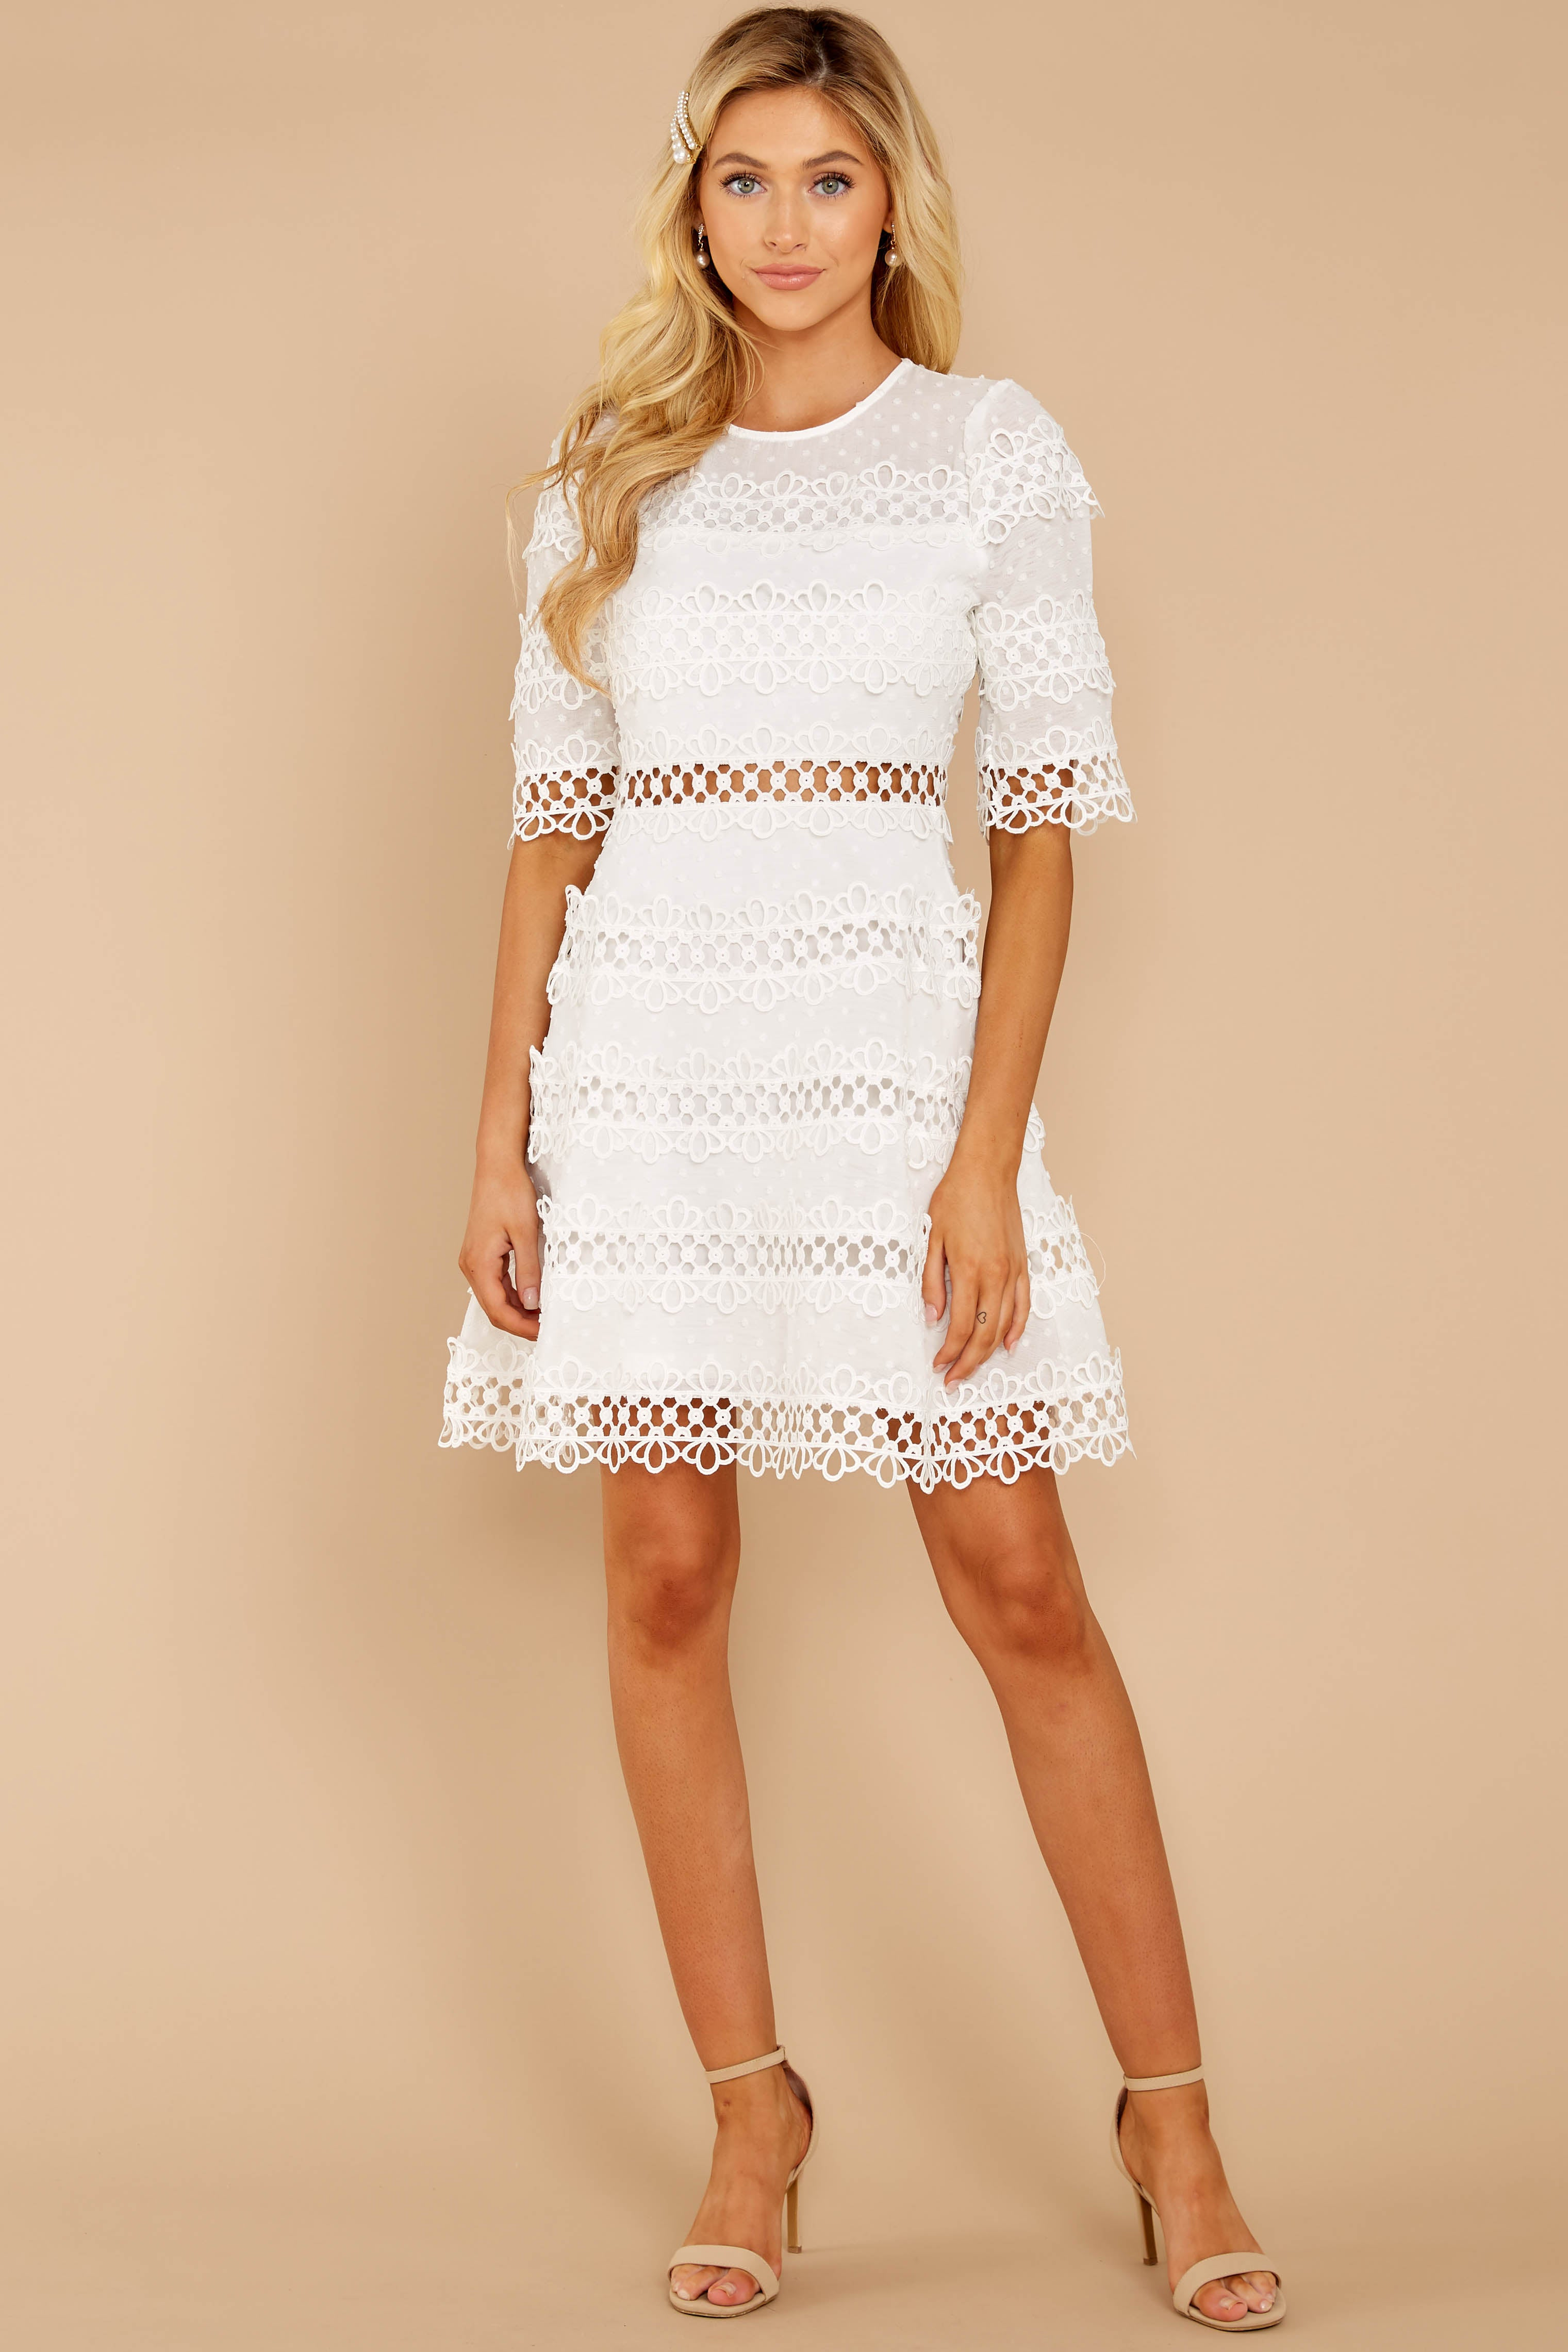 85122d7b9e4dc Poetic Situation White Lace Dress